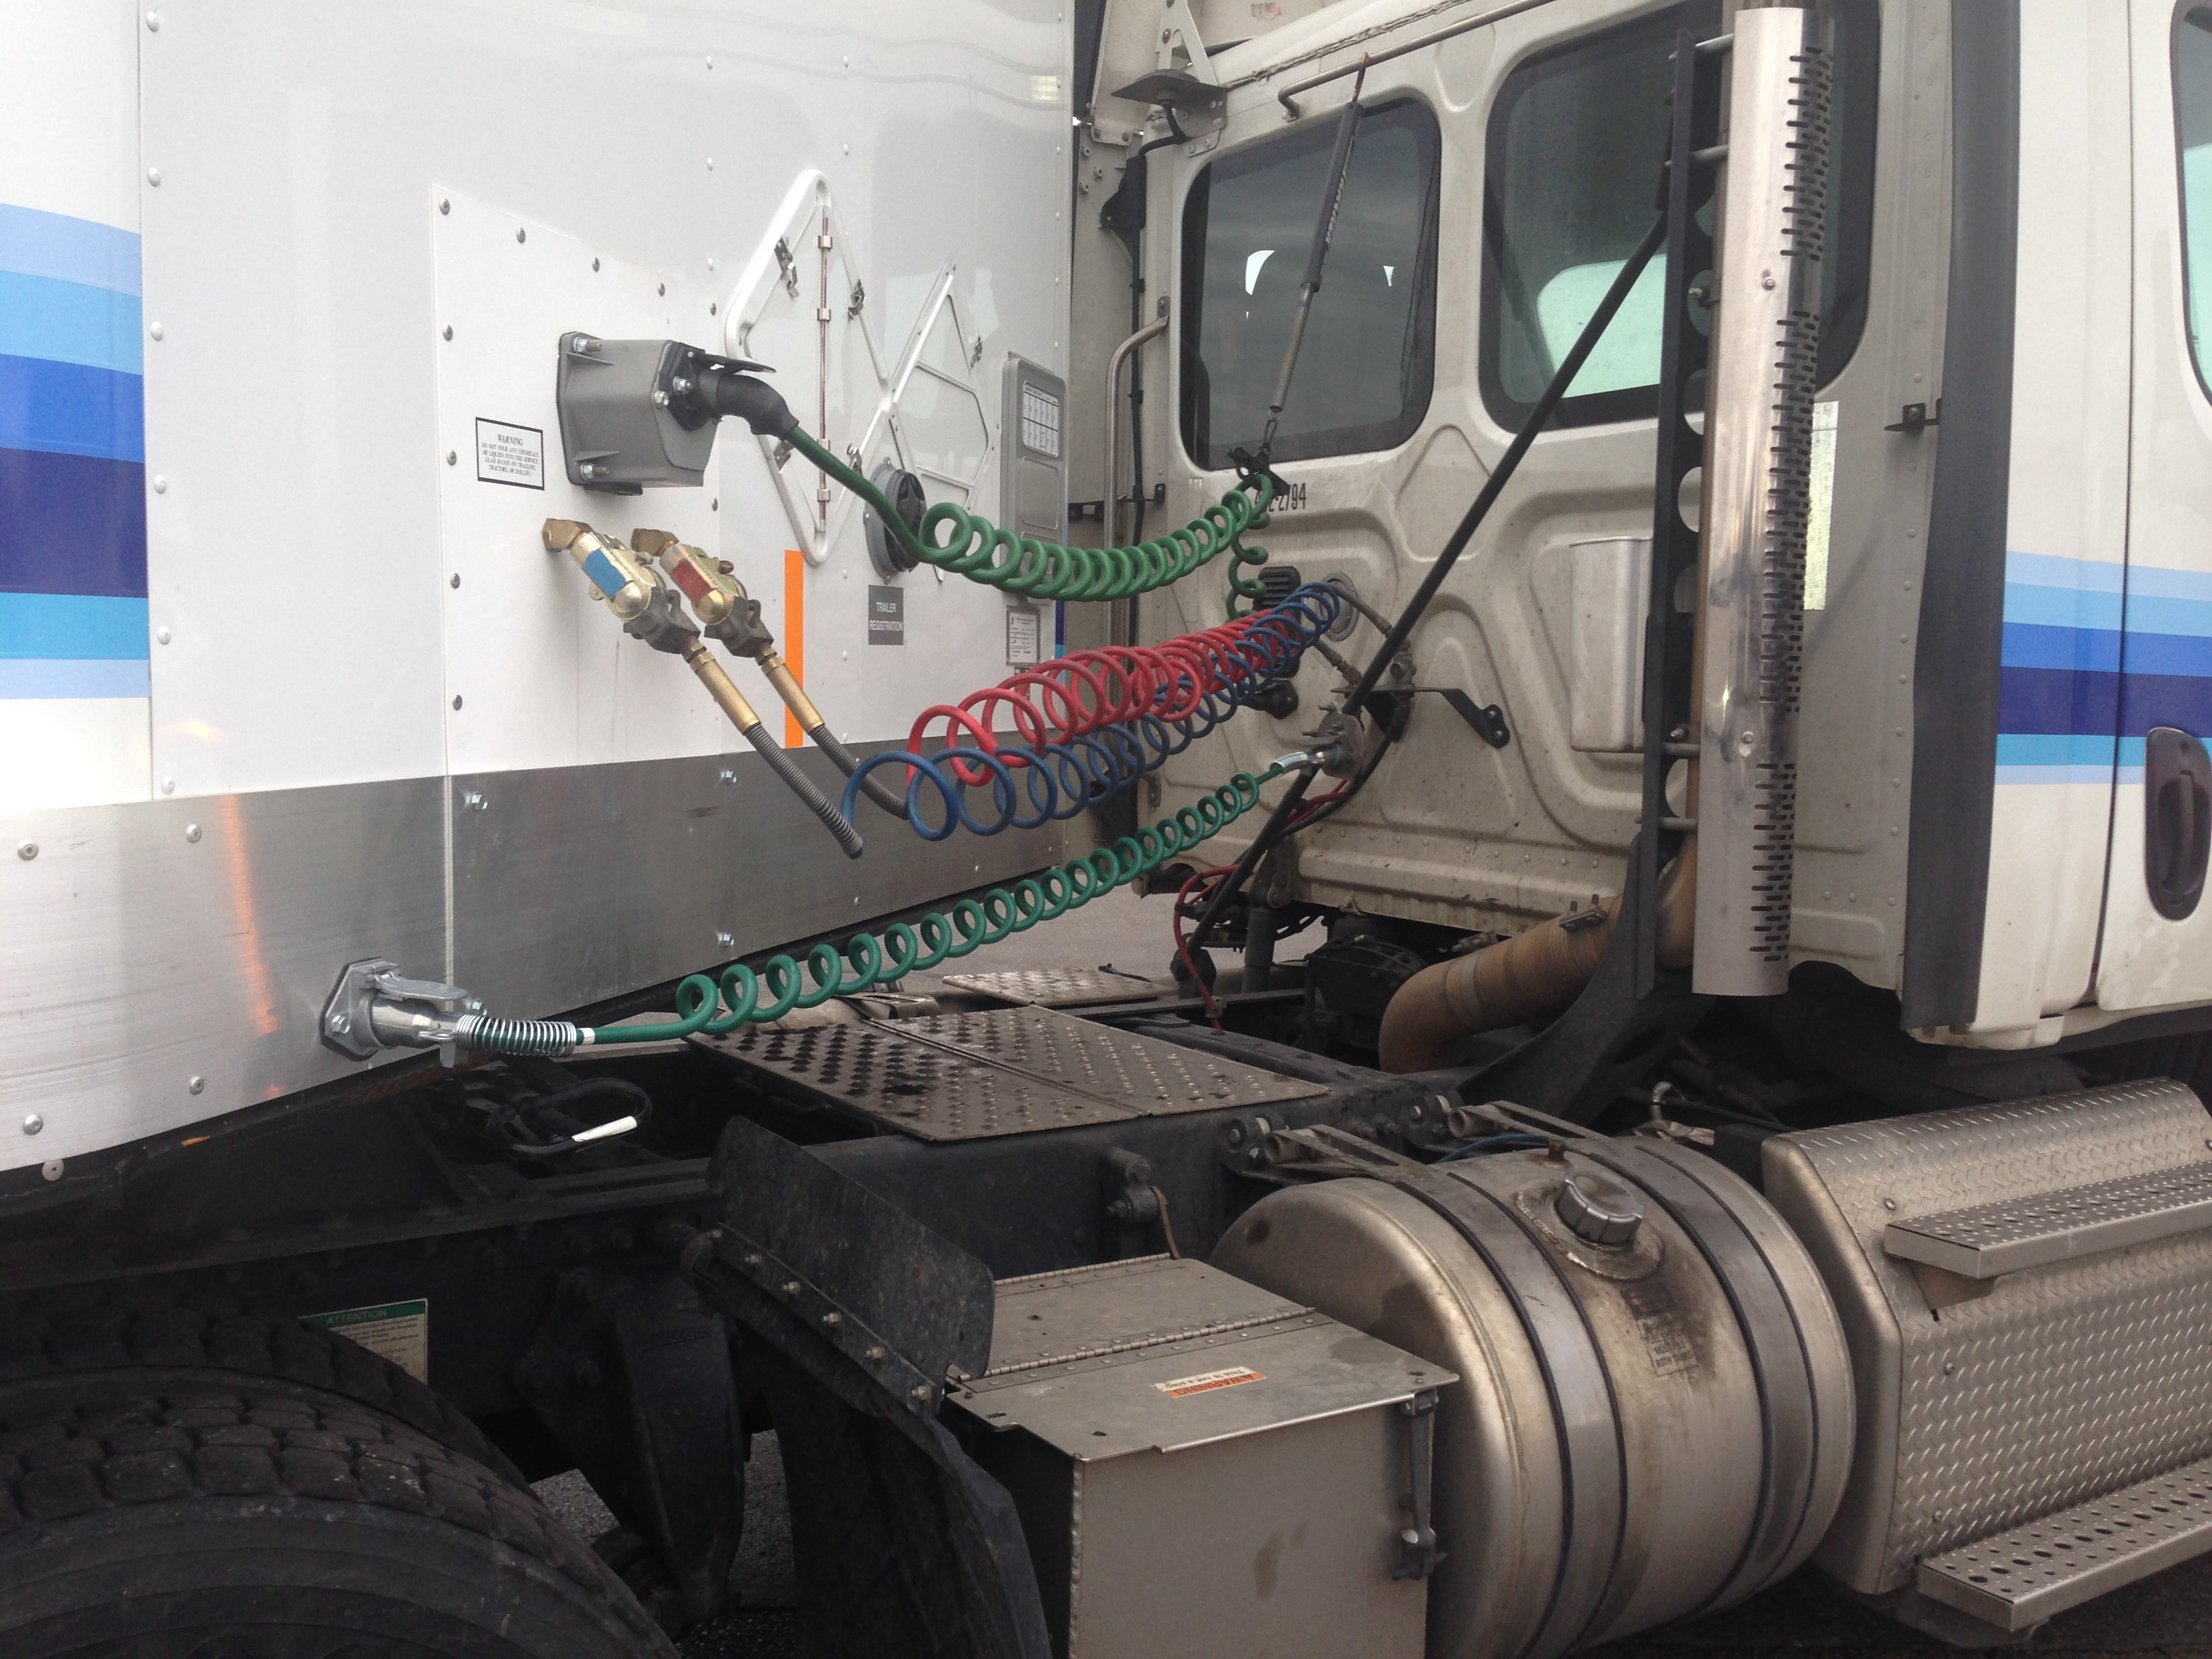 trailer wiring diagram for big rig trailer wiring diagram for 7 way plug tending liftgate batteries - equipment - trucking info #12